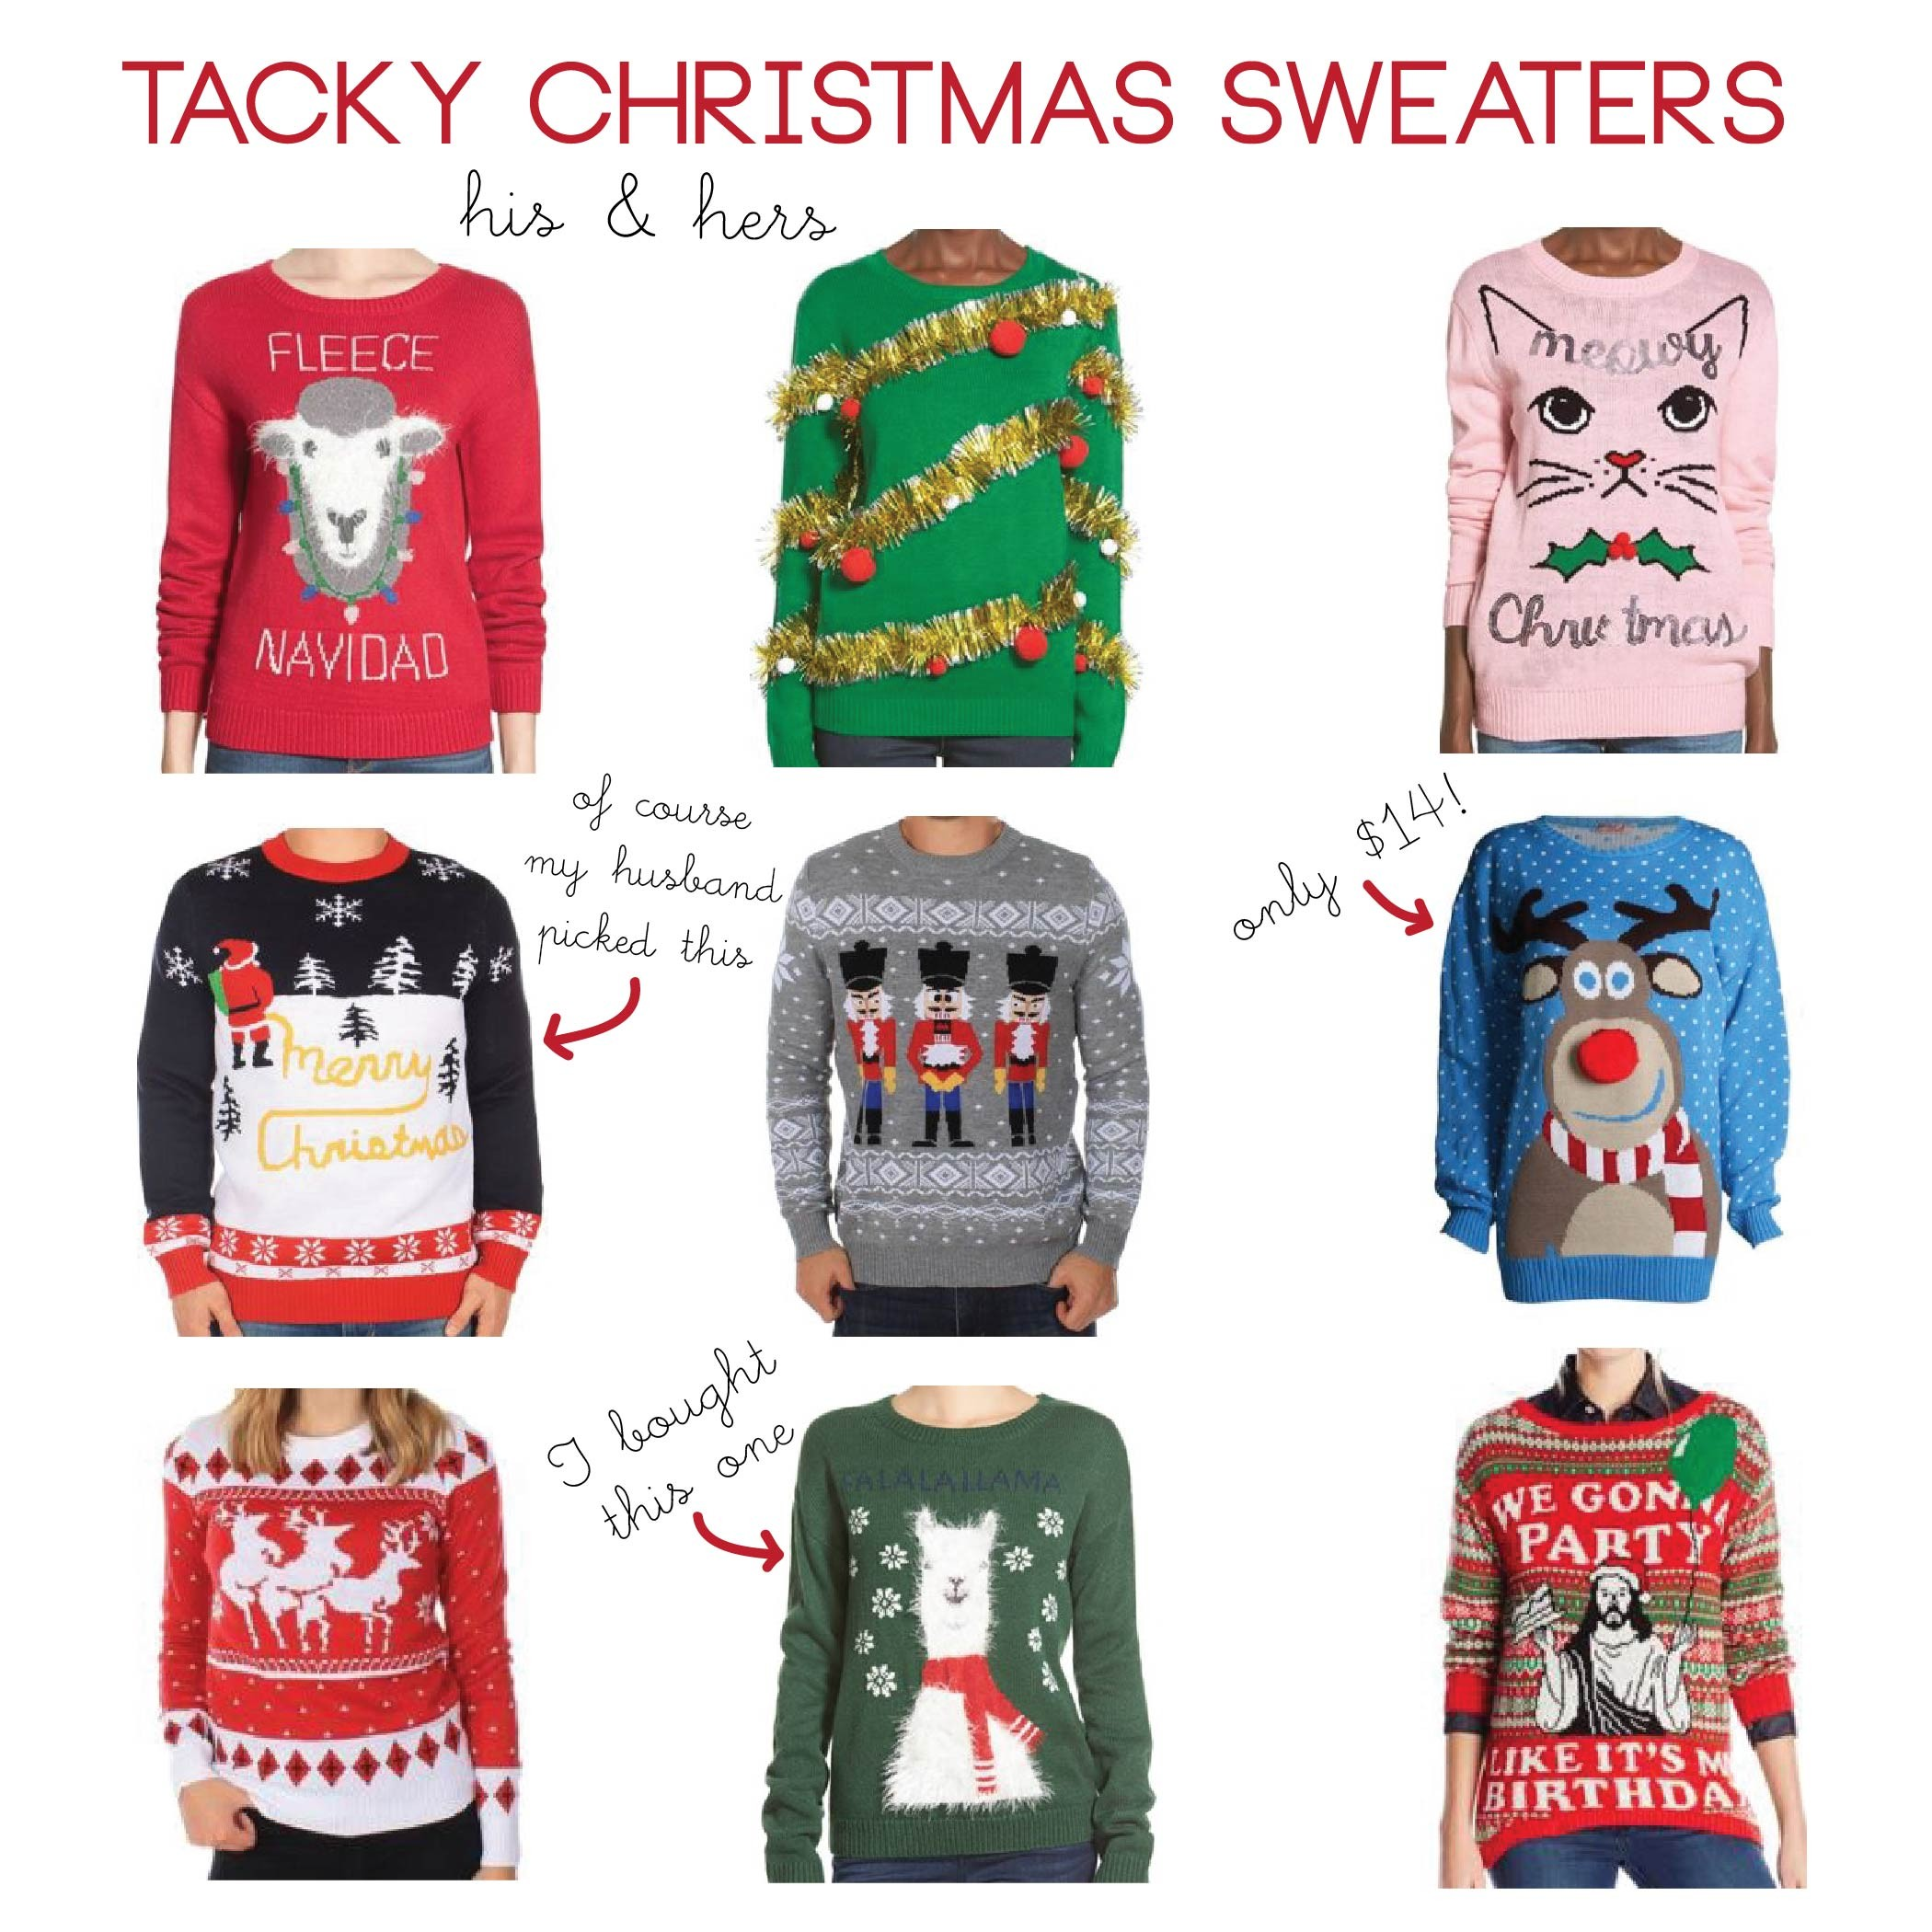 russs work christmas party has a tacky sweater theme which is so much fun last year i did not prepare enough in advance to order anything so last minute